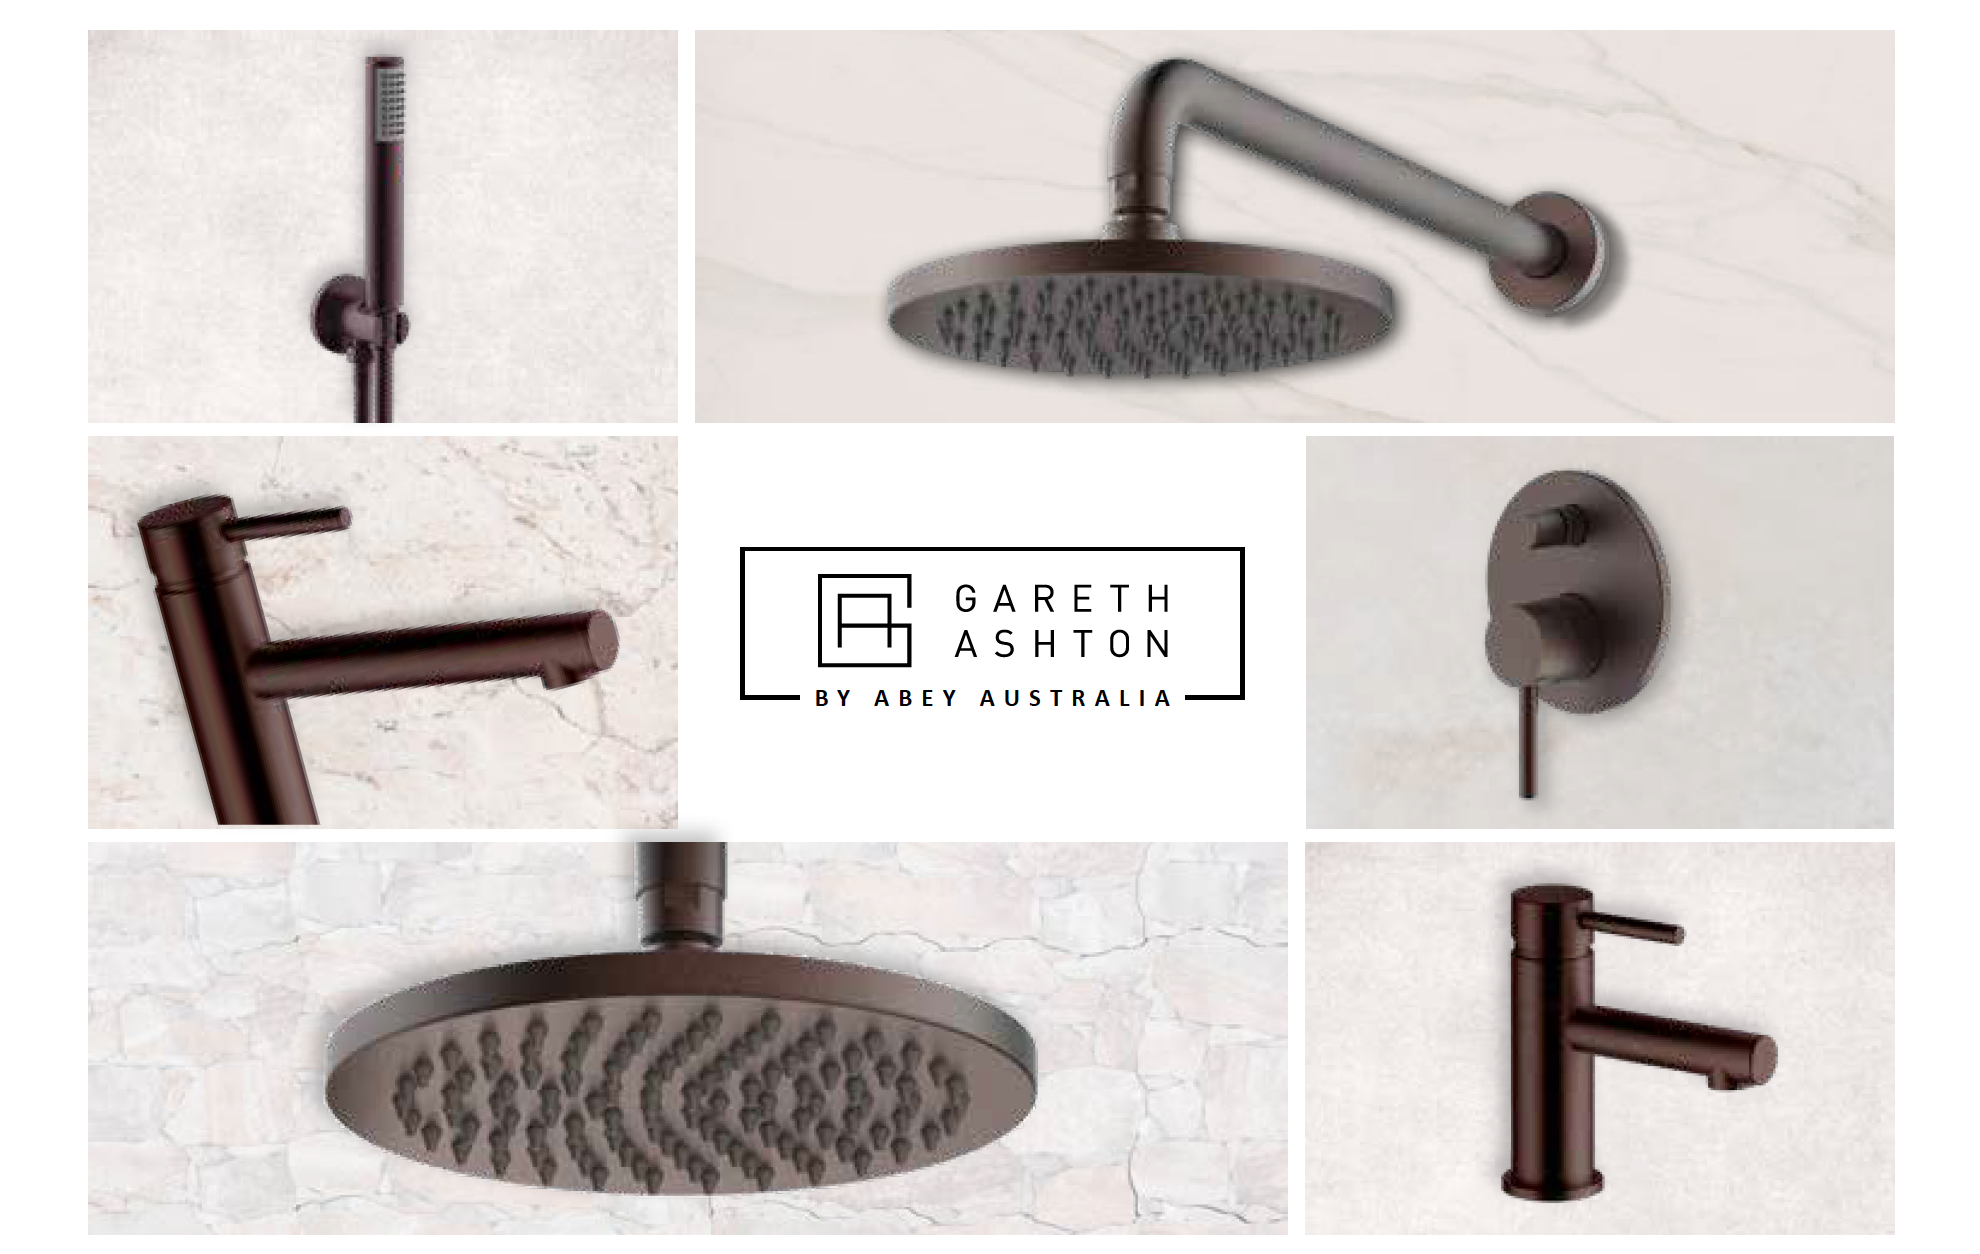 gareth-ashton-tapware-shower-and-accessories-with-copper-finish.png